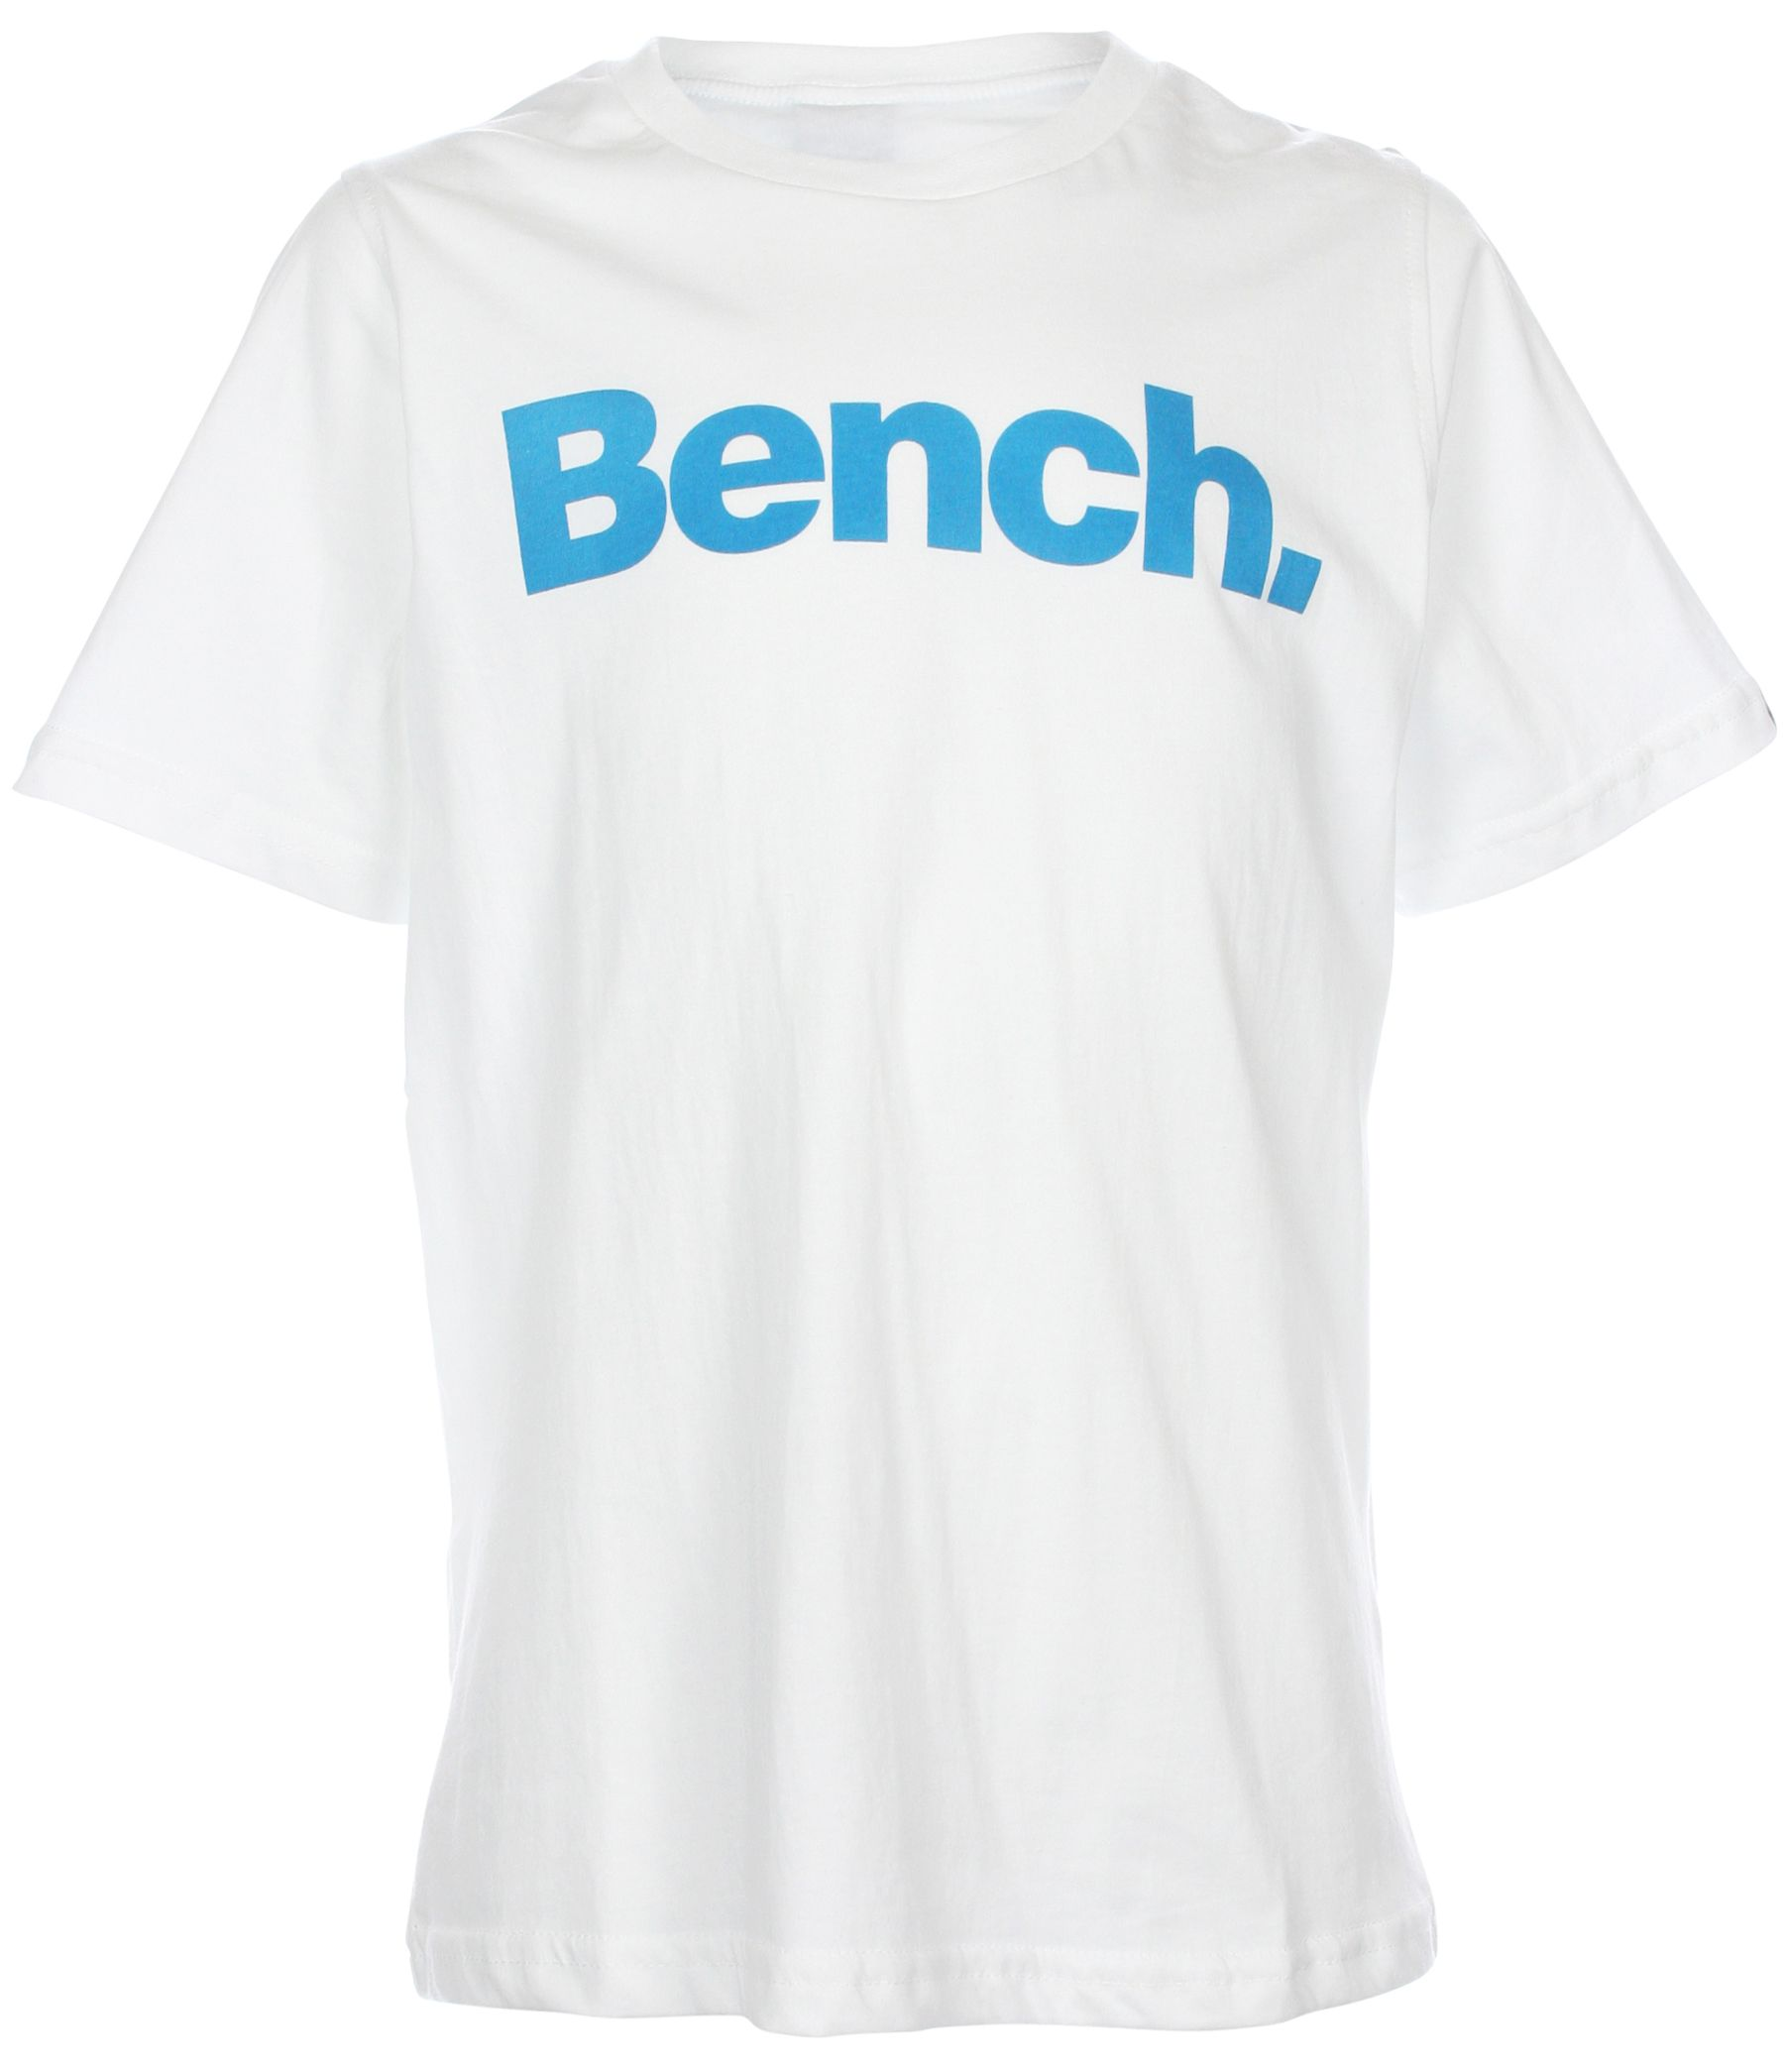 Childrens Bench Child standard t-shirt,